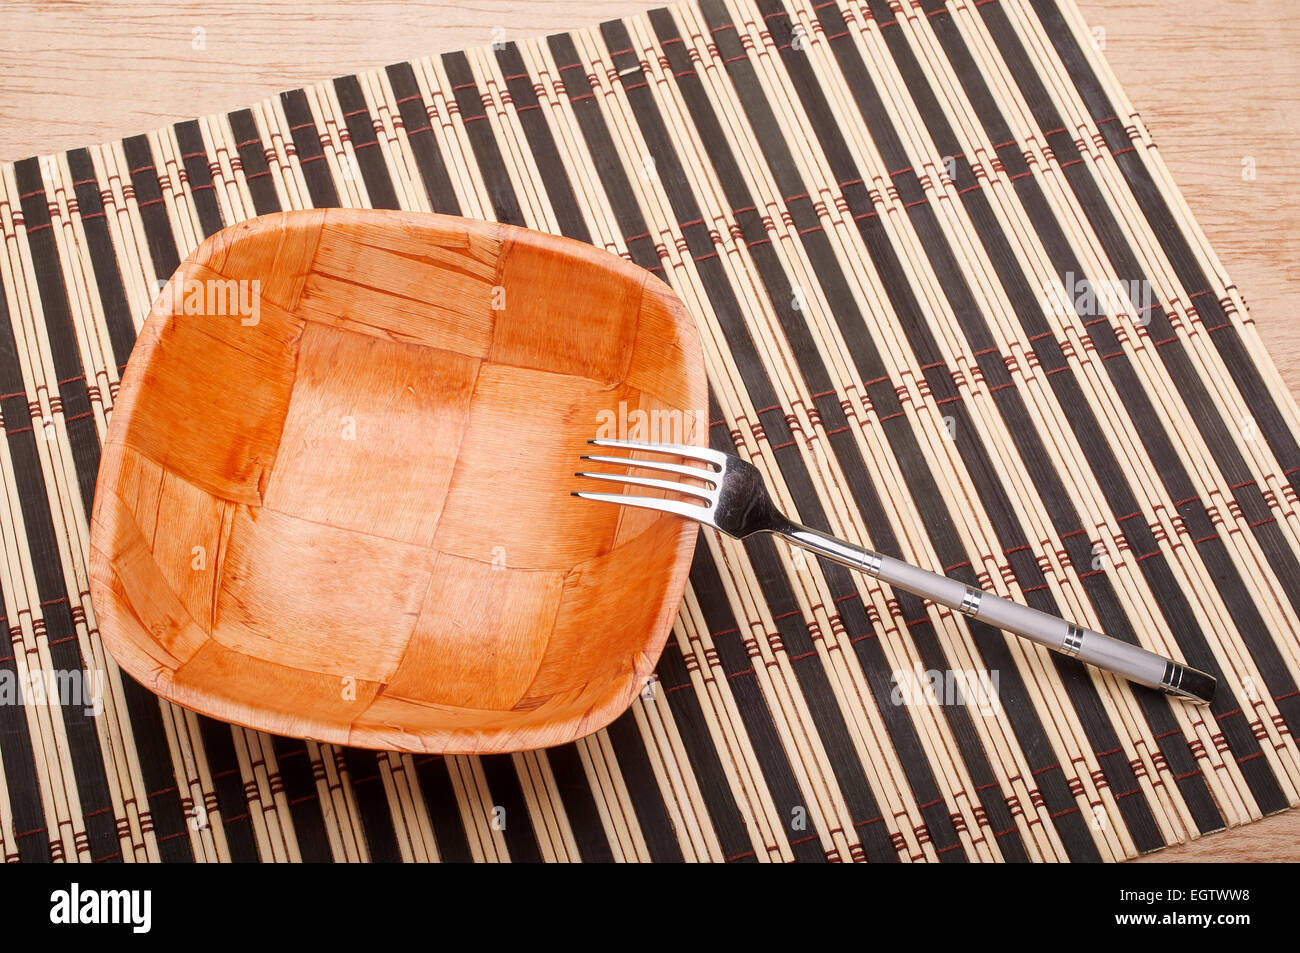 Fork detail in bowl on placemats Stock Photo